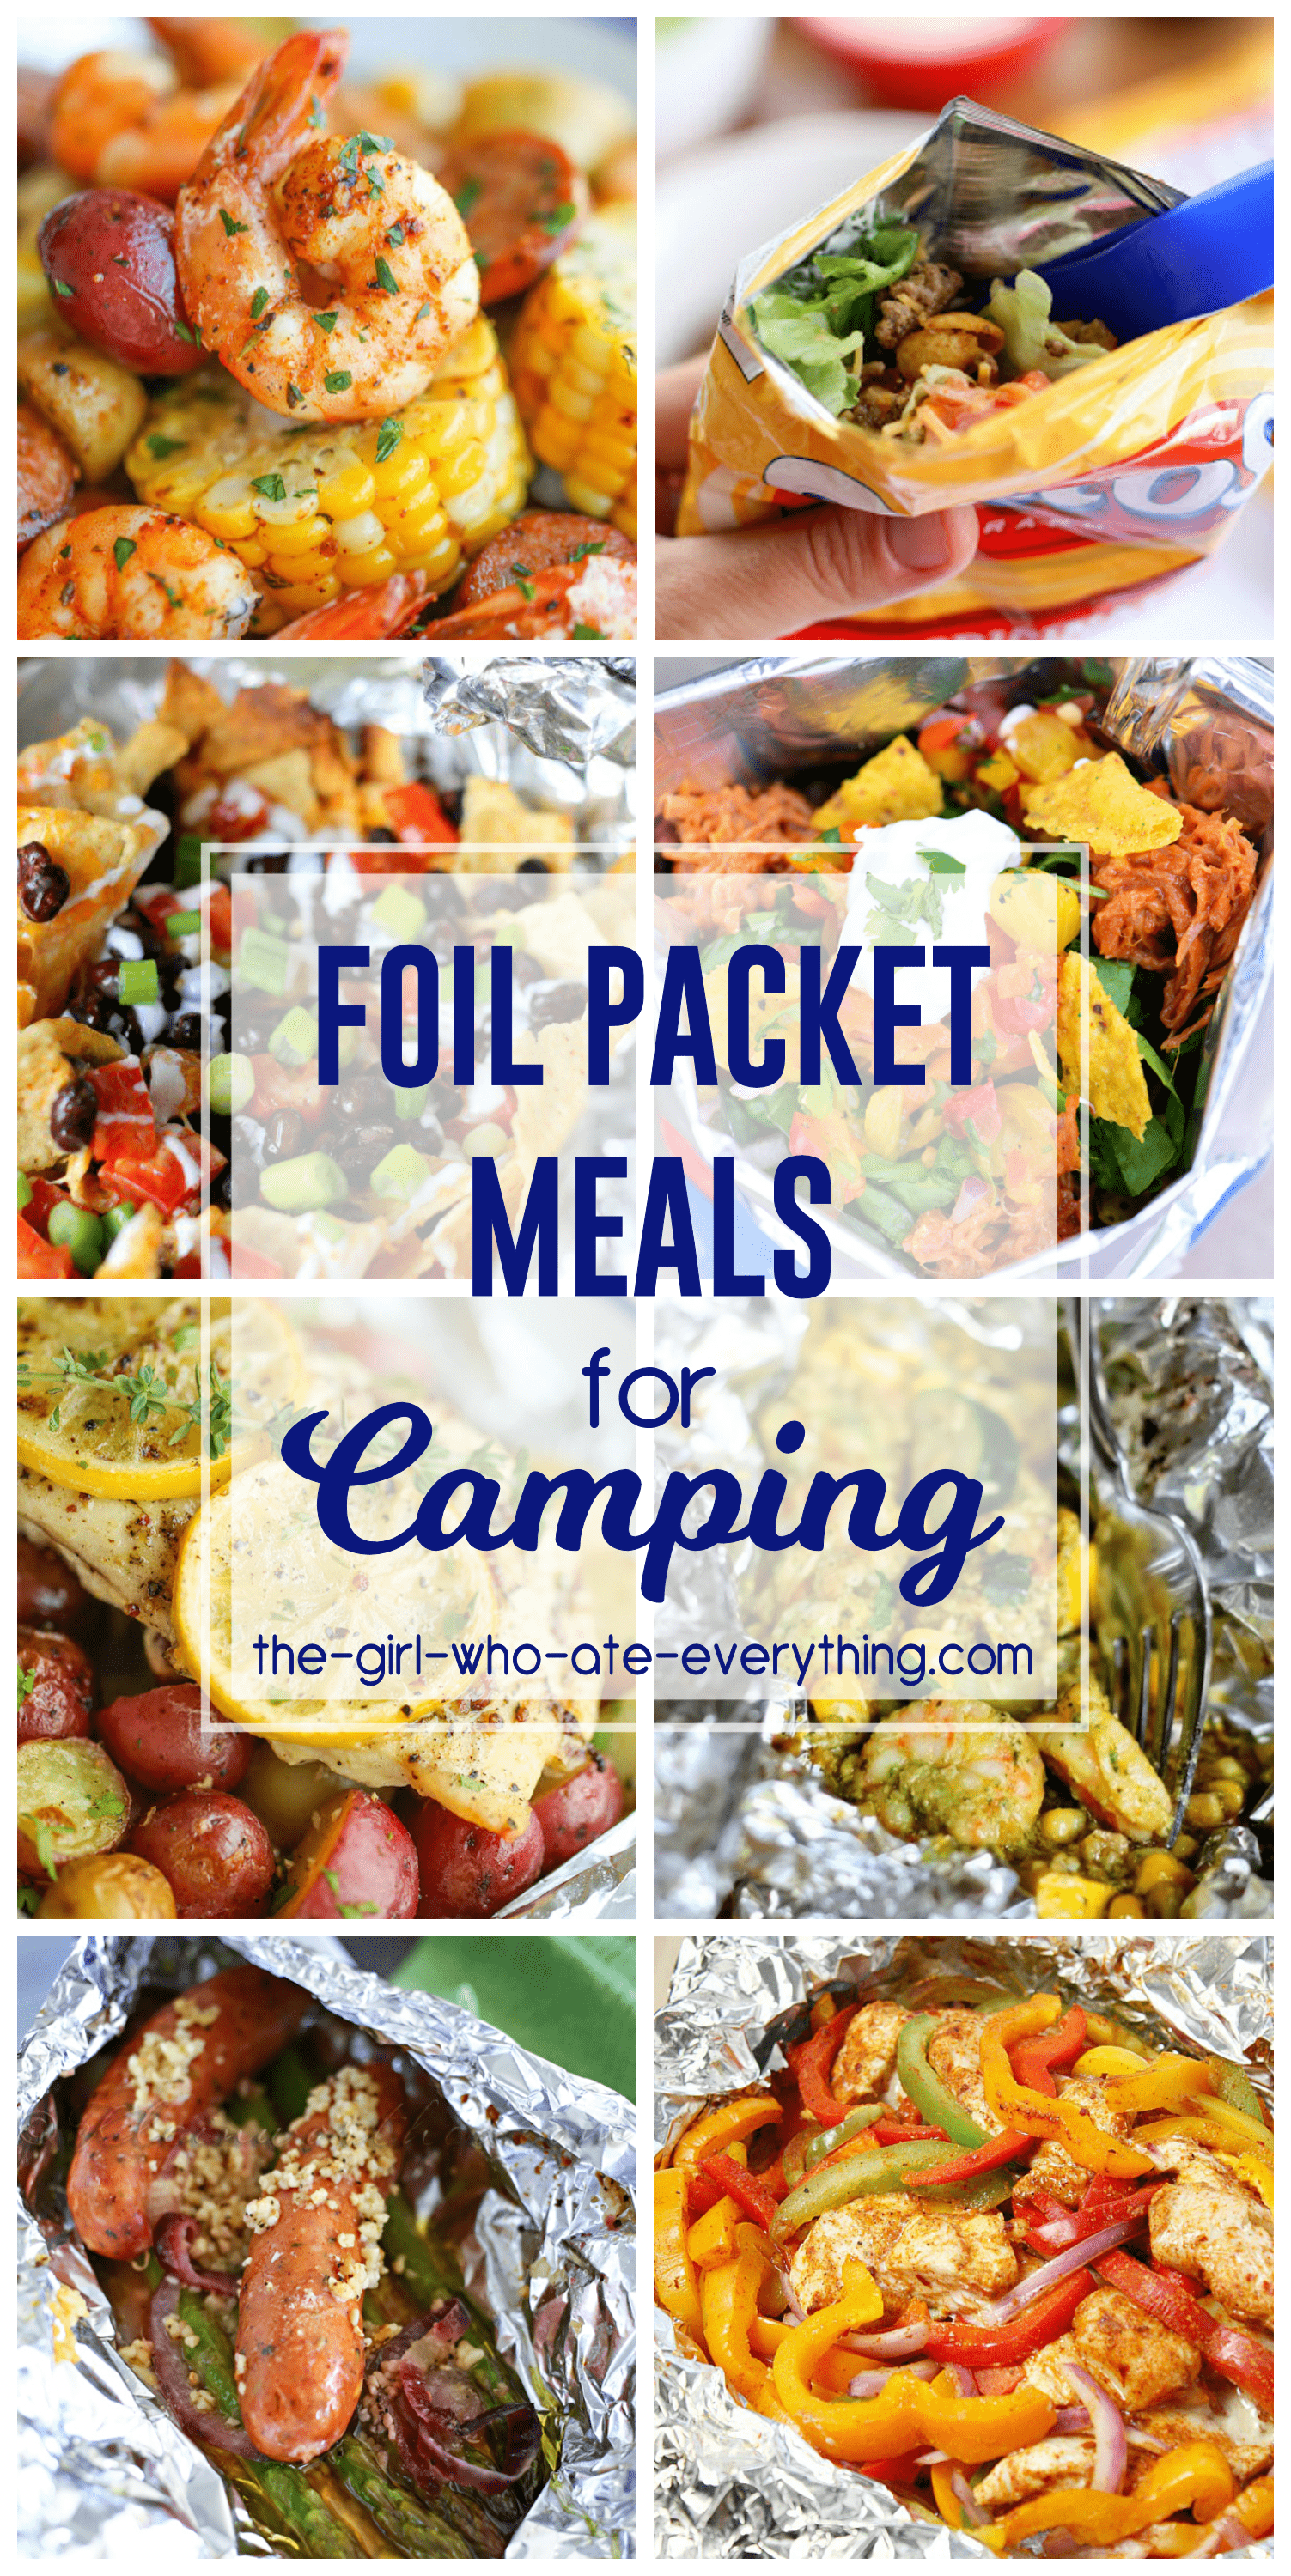 foil packet meals for camping. Black Bedroom Furniture Sets. Home Design Ideas